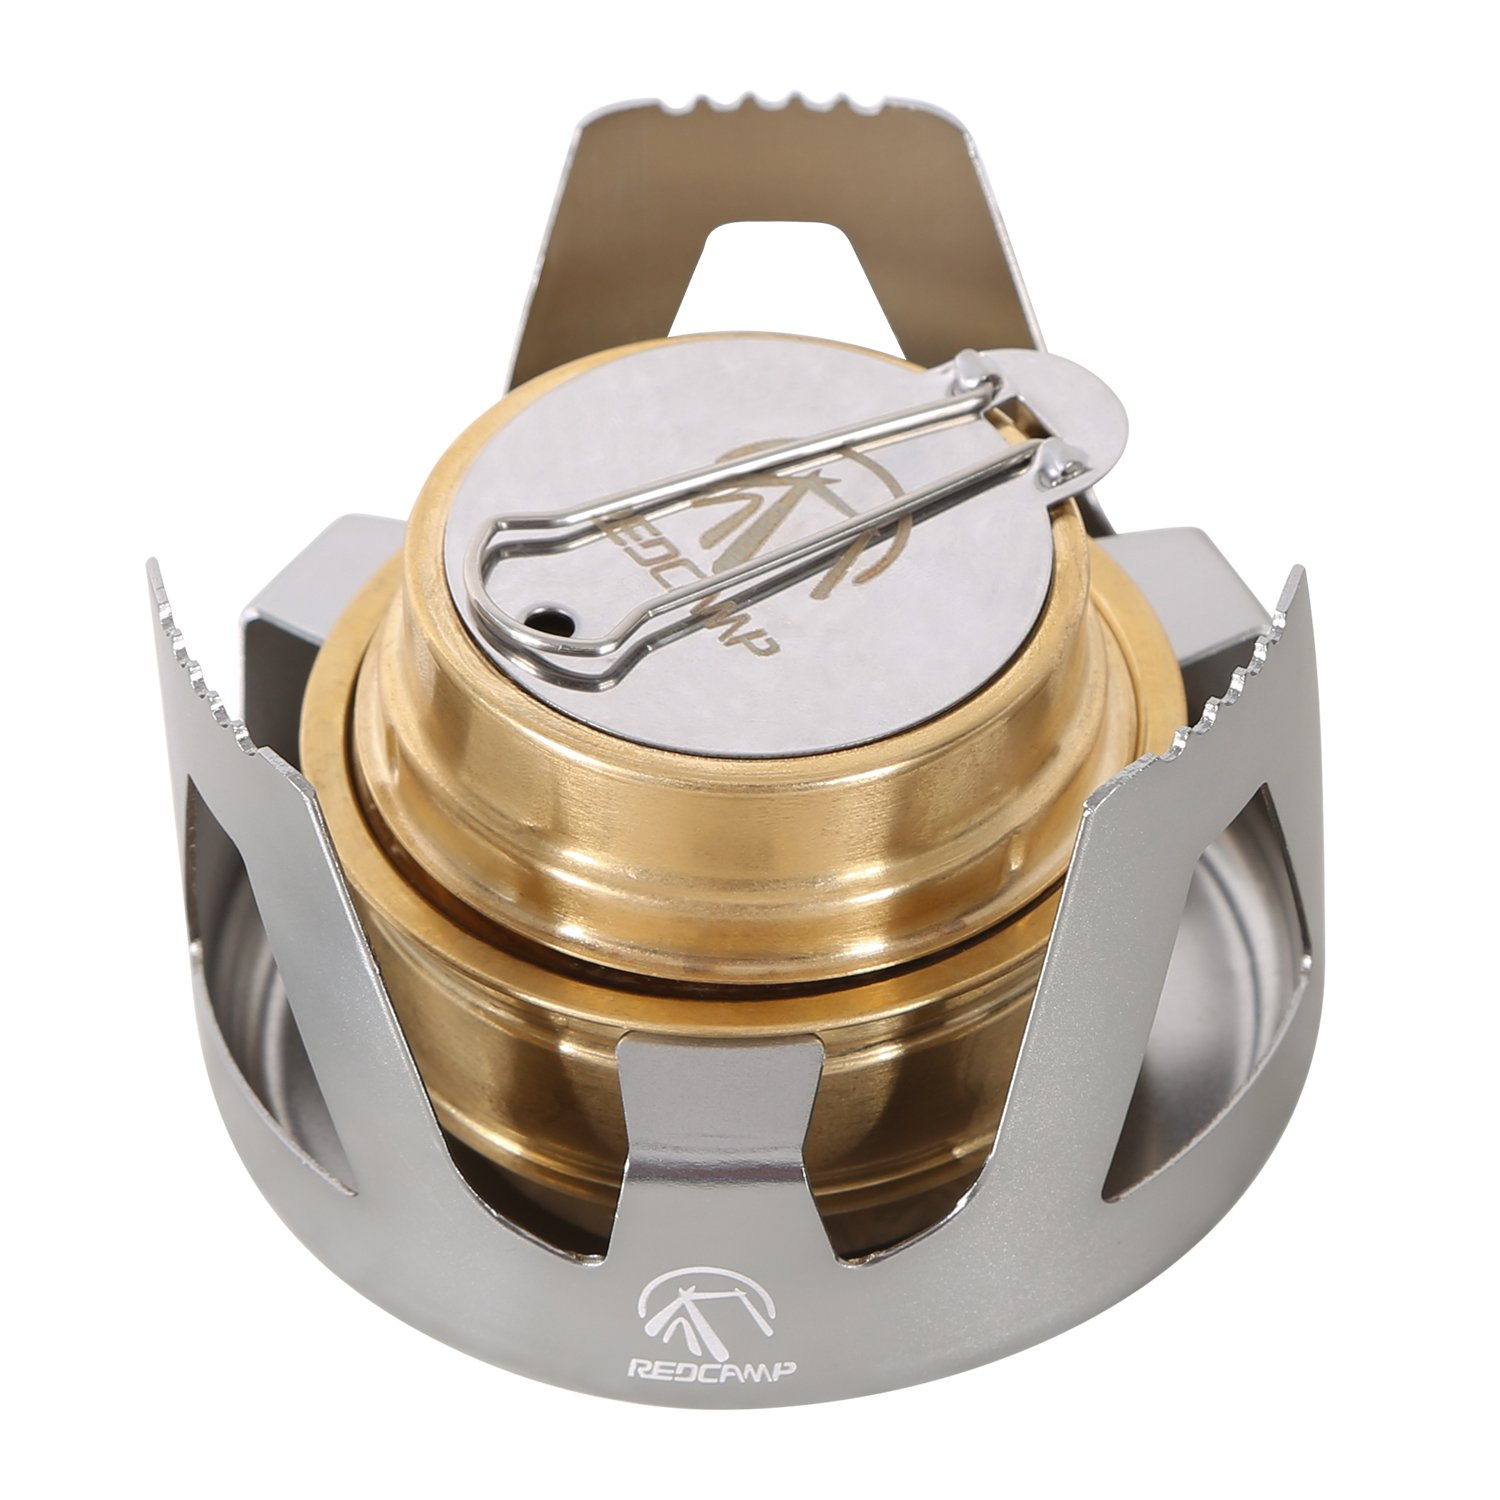 REDCAMP Mini Alcohol Stove for Backpacking, Lightweight Brass Spirit Burner with Aluminium Stand for Camping Hiking, Silver by REDCAMP